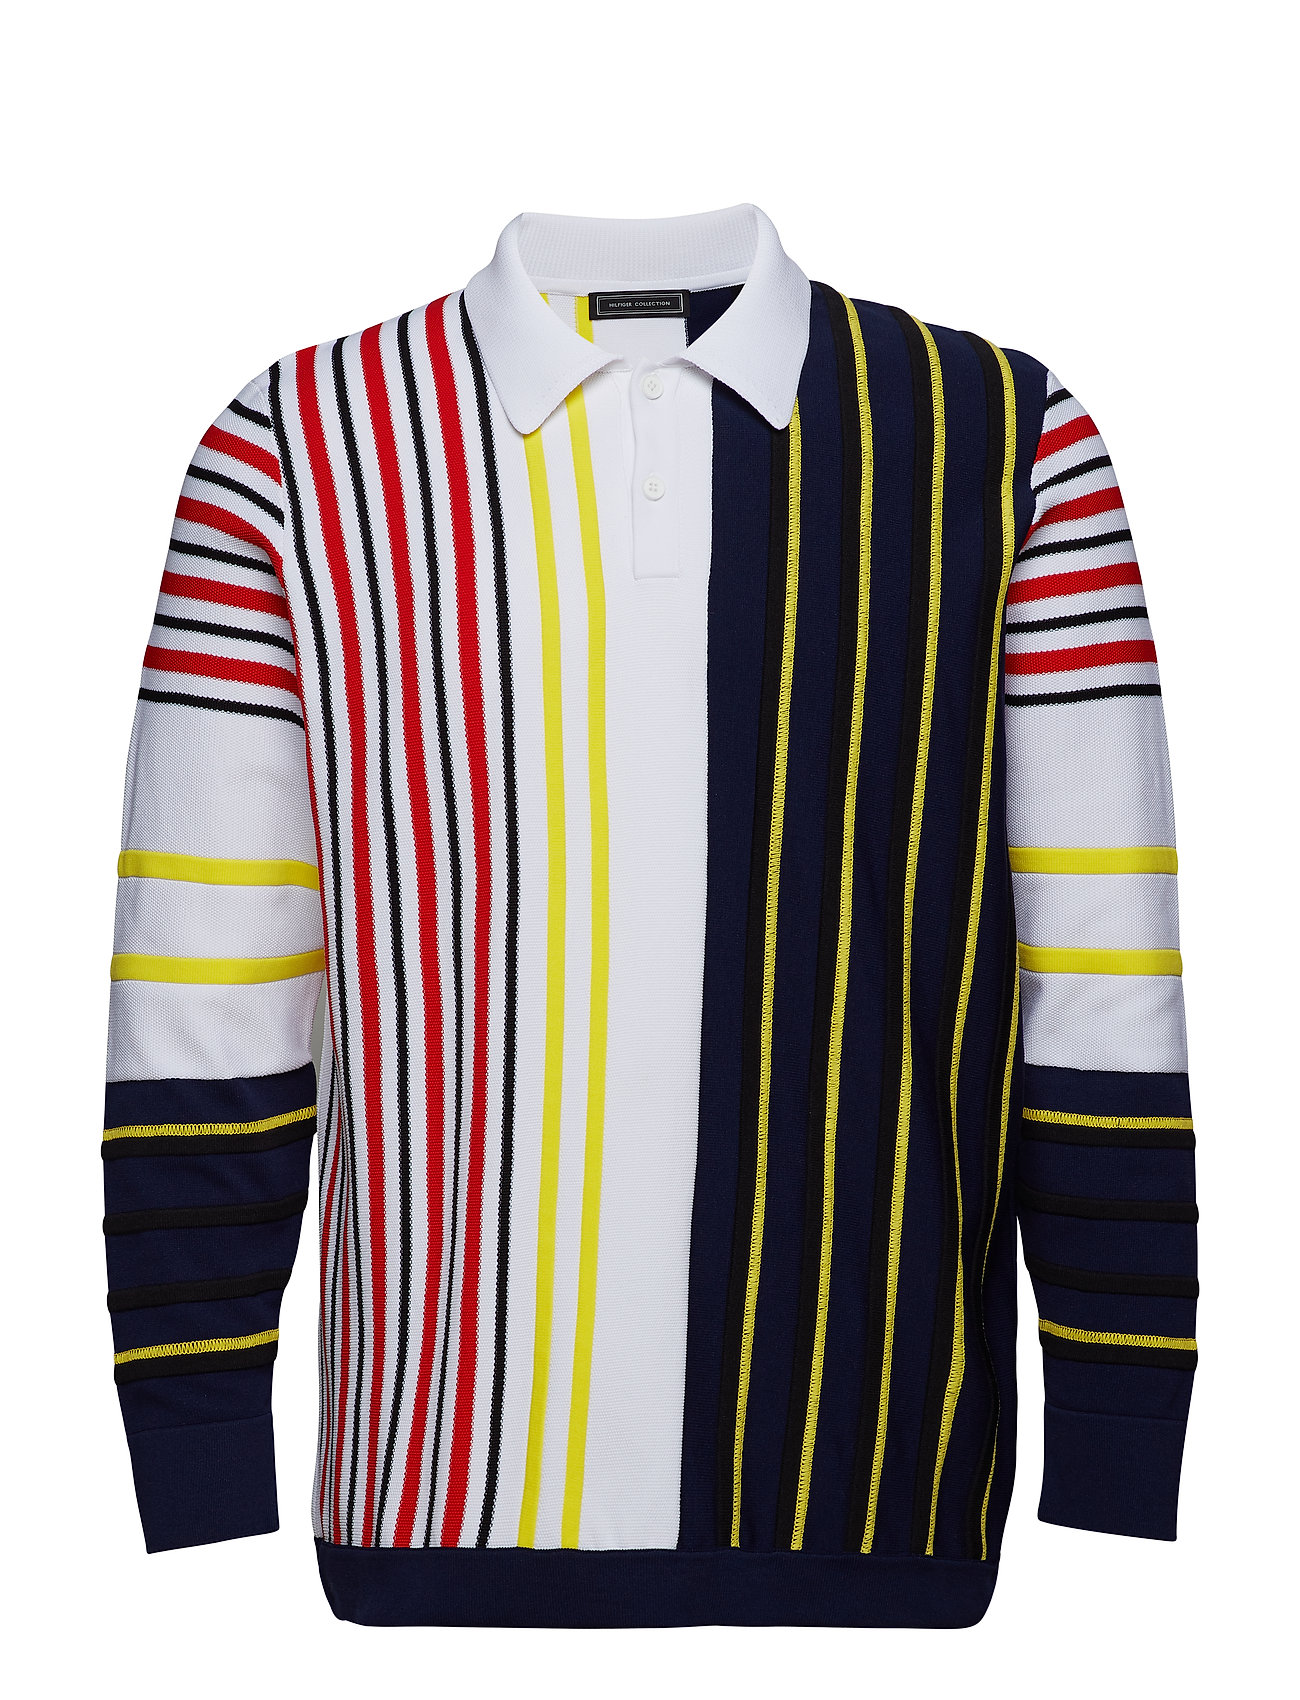 WhiteHilfiger Collection Swbright 012 Striped Rugby qMSUVpzG